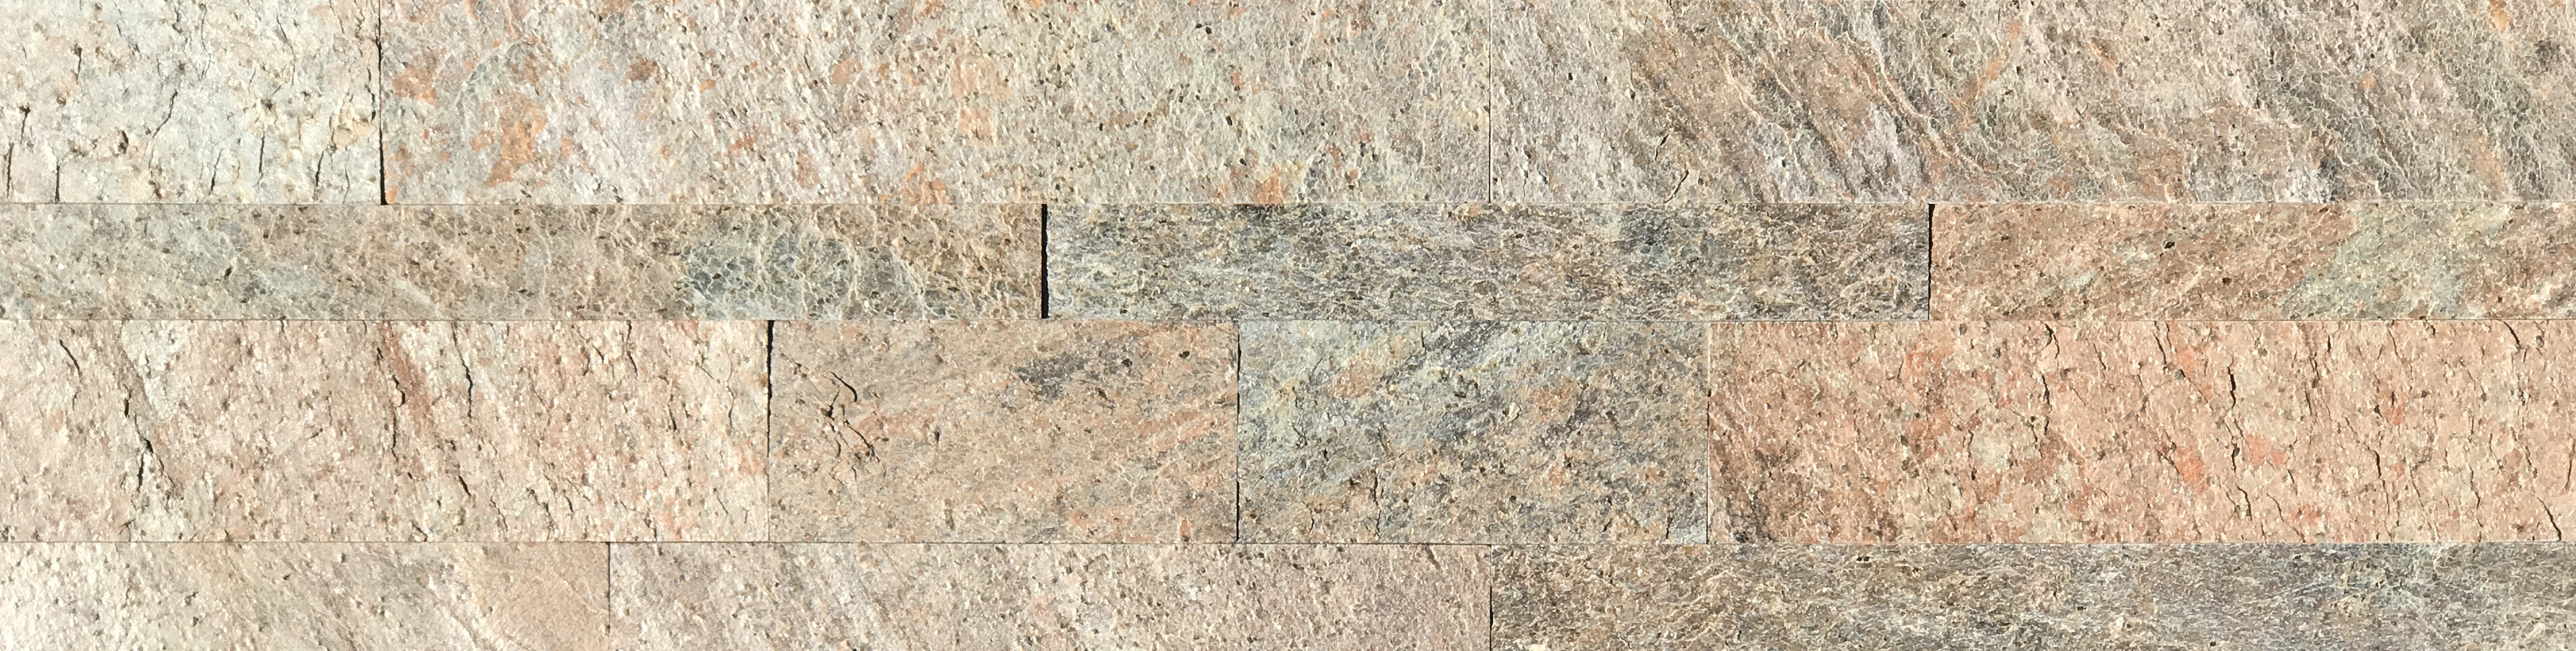 Copper Gold Slimline Ledgestone Panel Image